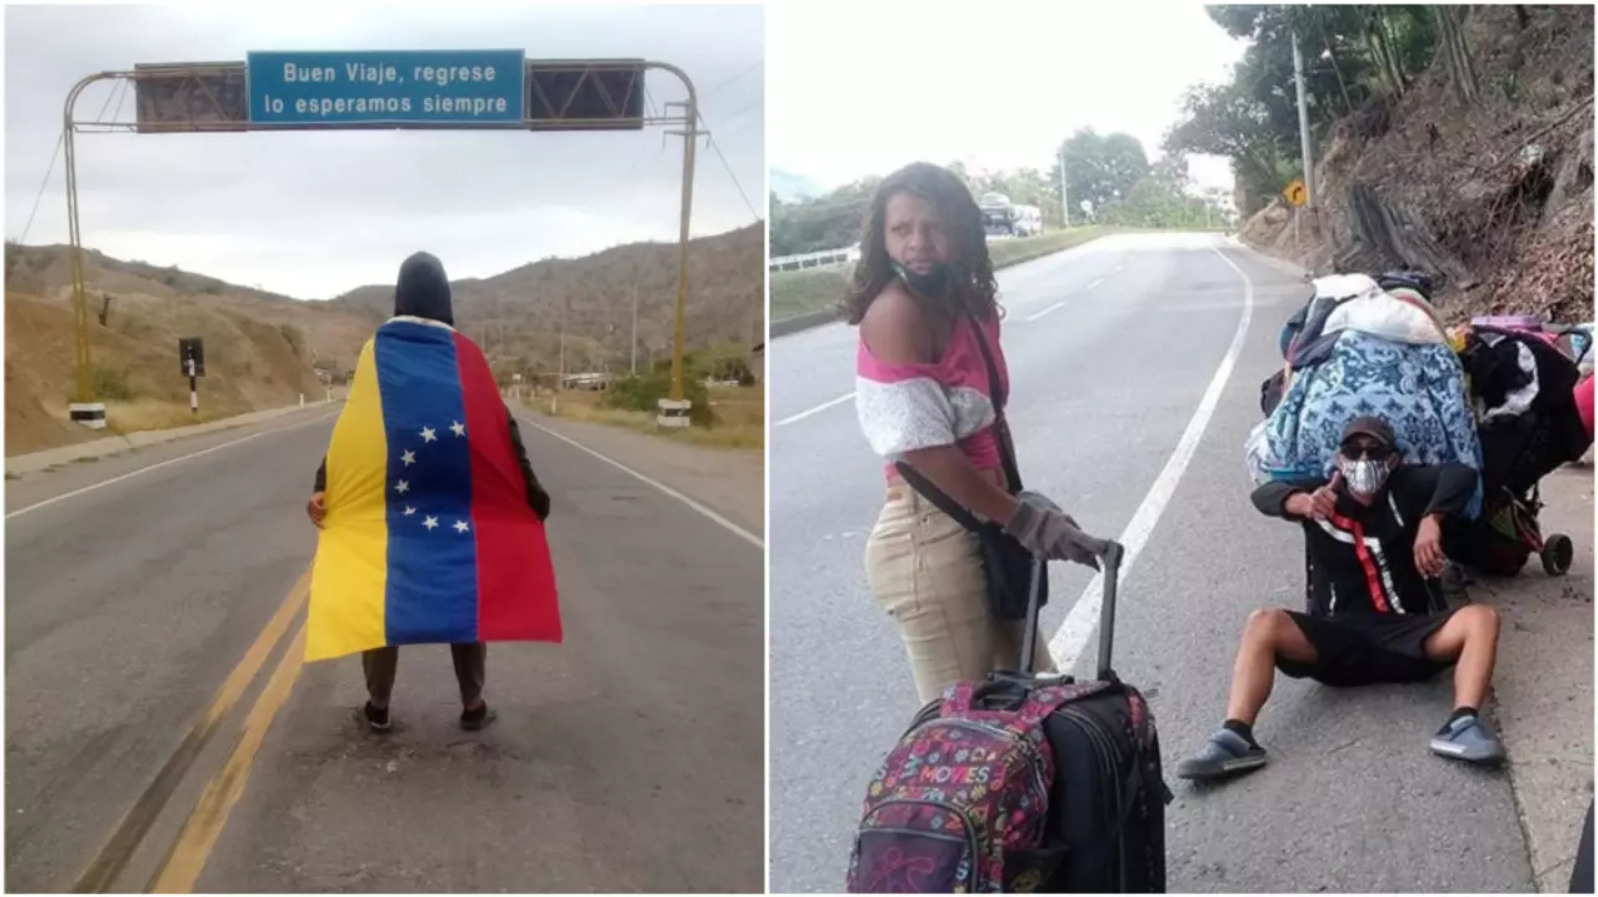 The image on the left shows Neo Mendoza on the road in Peru. The image on the right shows Eduardo Azuaje's group on the road in Colombia.